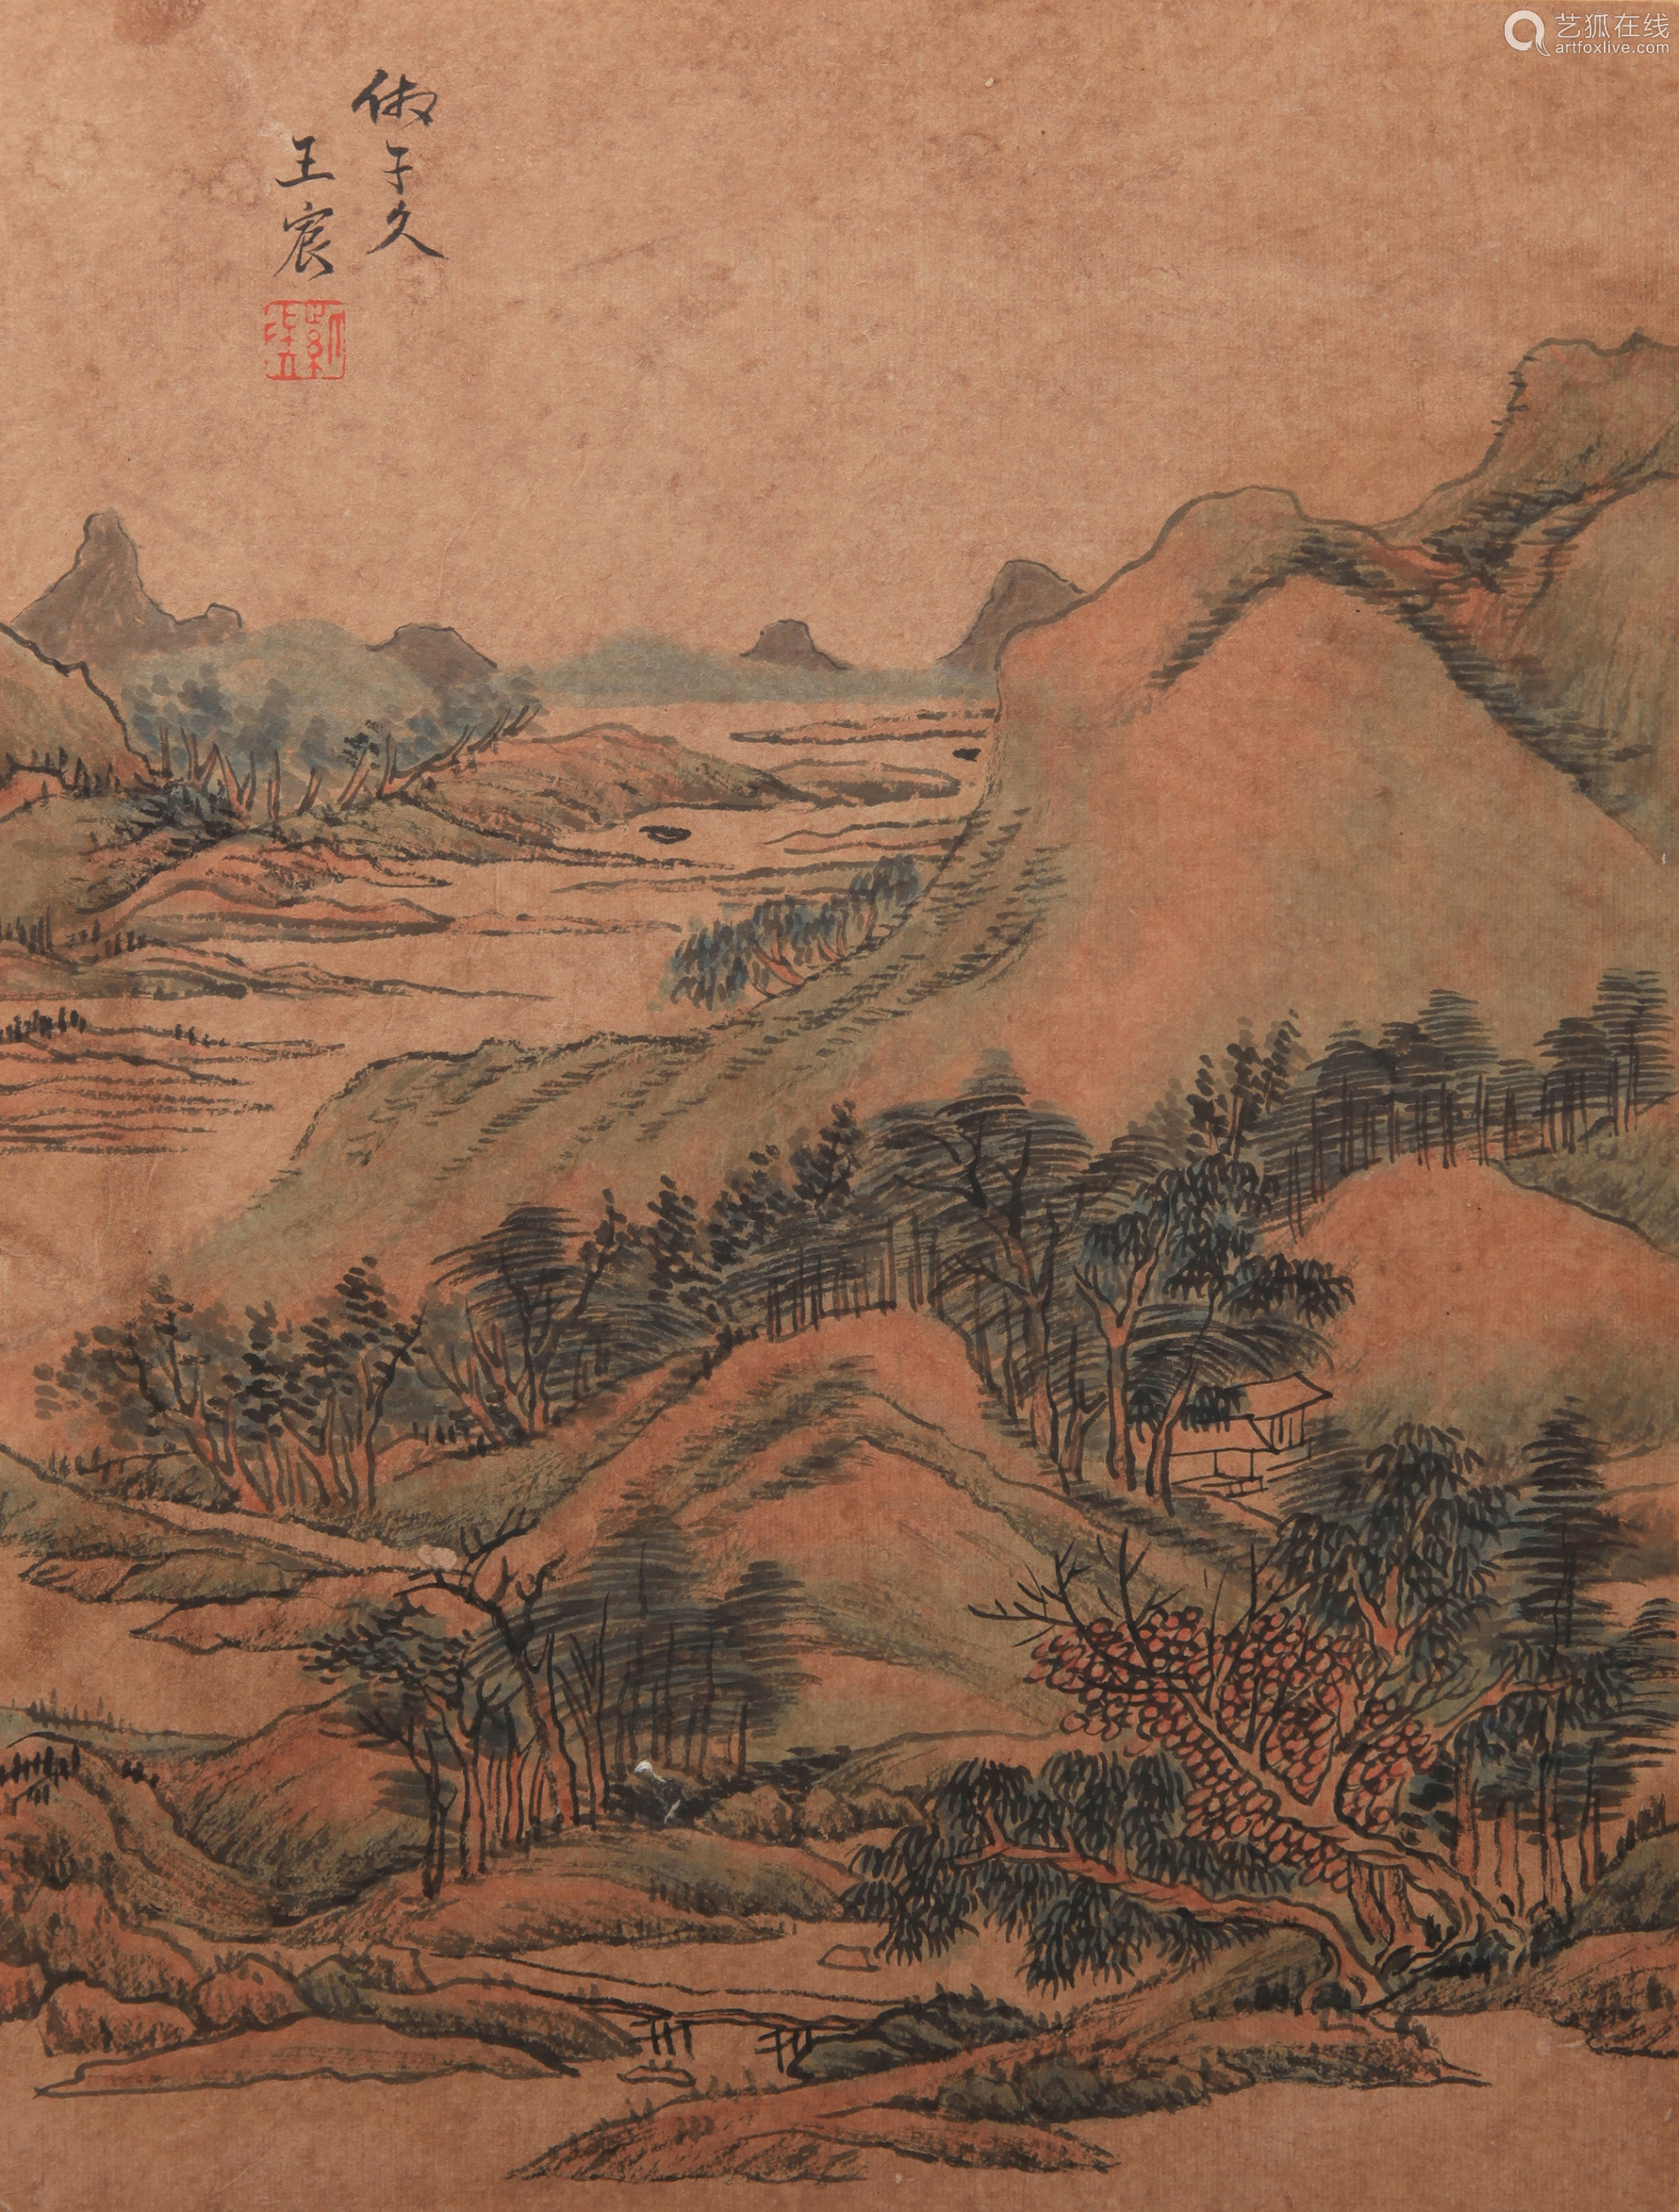 Wang Chen - Set of Mountain Scenery Shan Shui Paintings